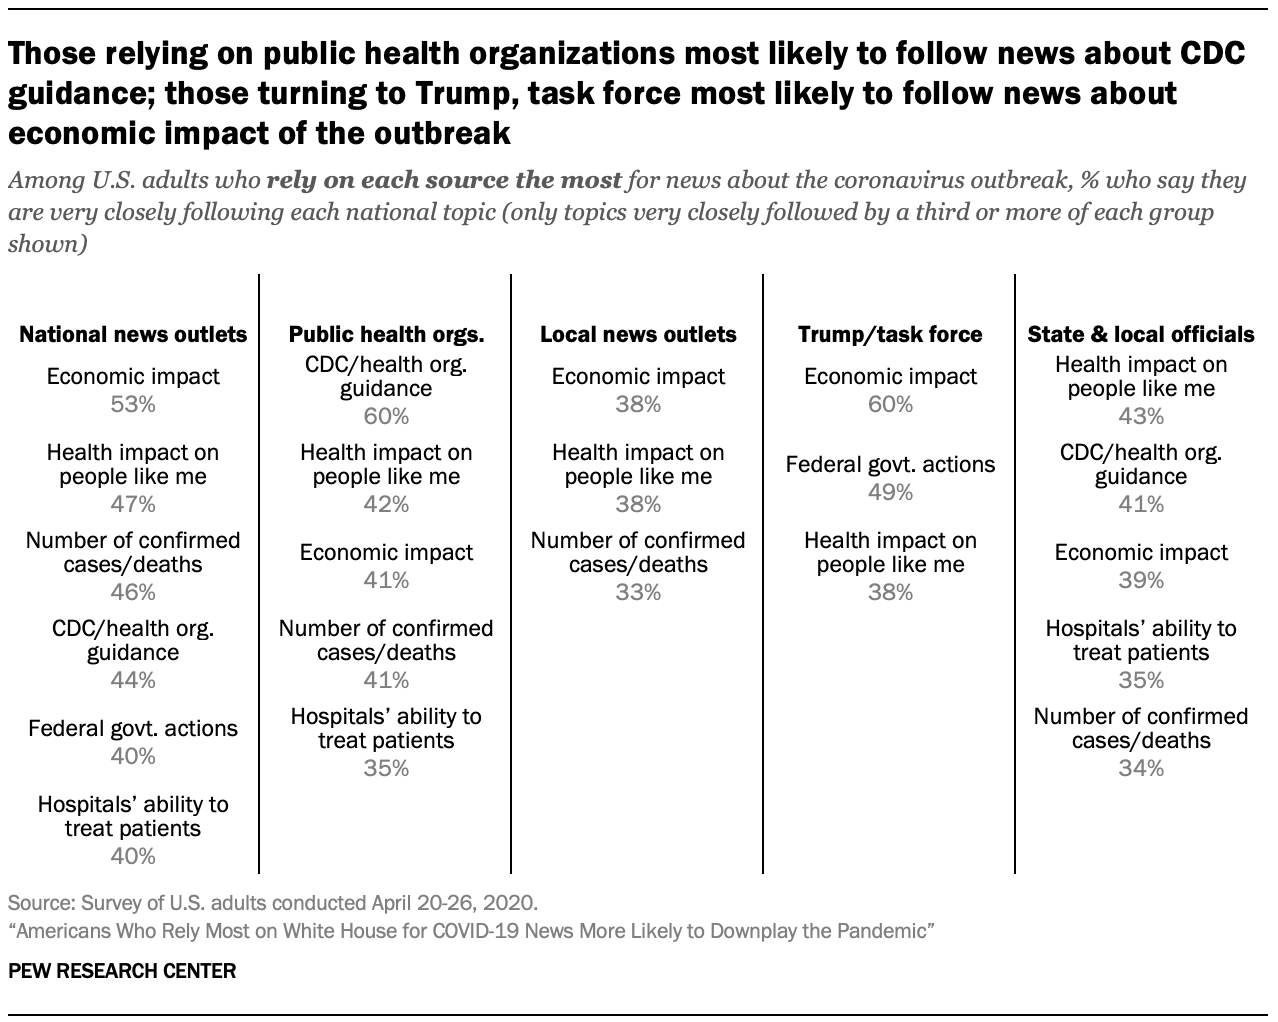 Those relying on public health organizations most likely to follow news about CDC guidance; those turning to Trump, task force most likely to follow news about economic impact of the outbreak